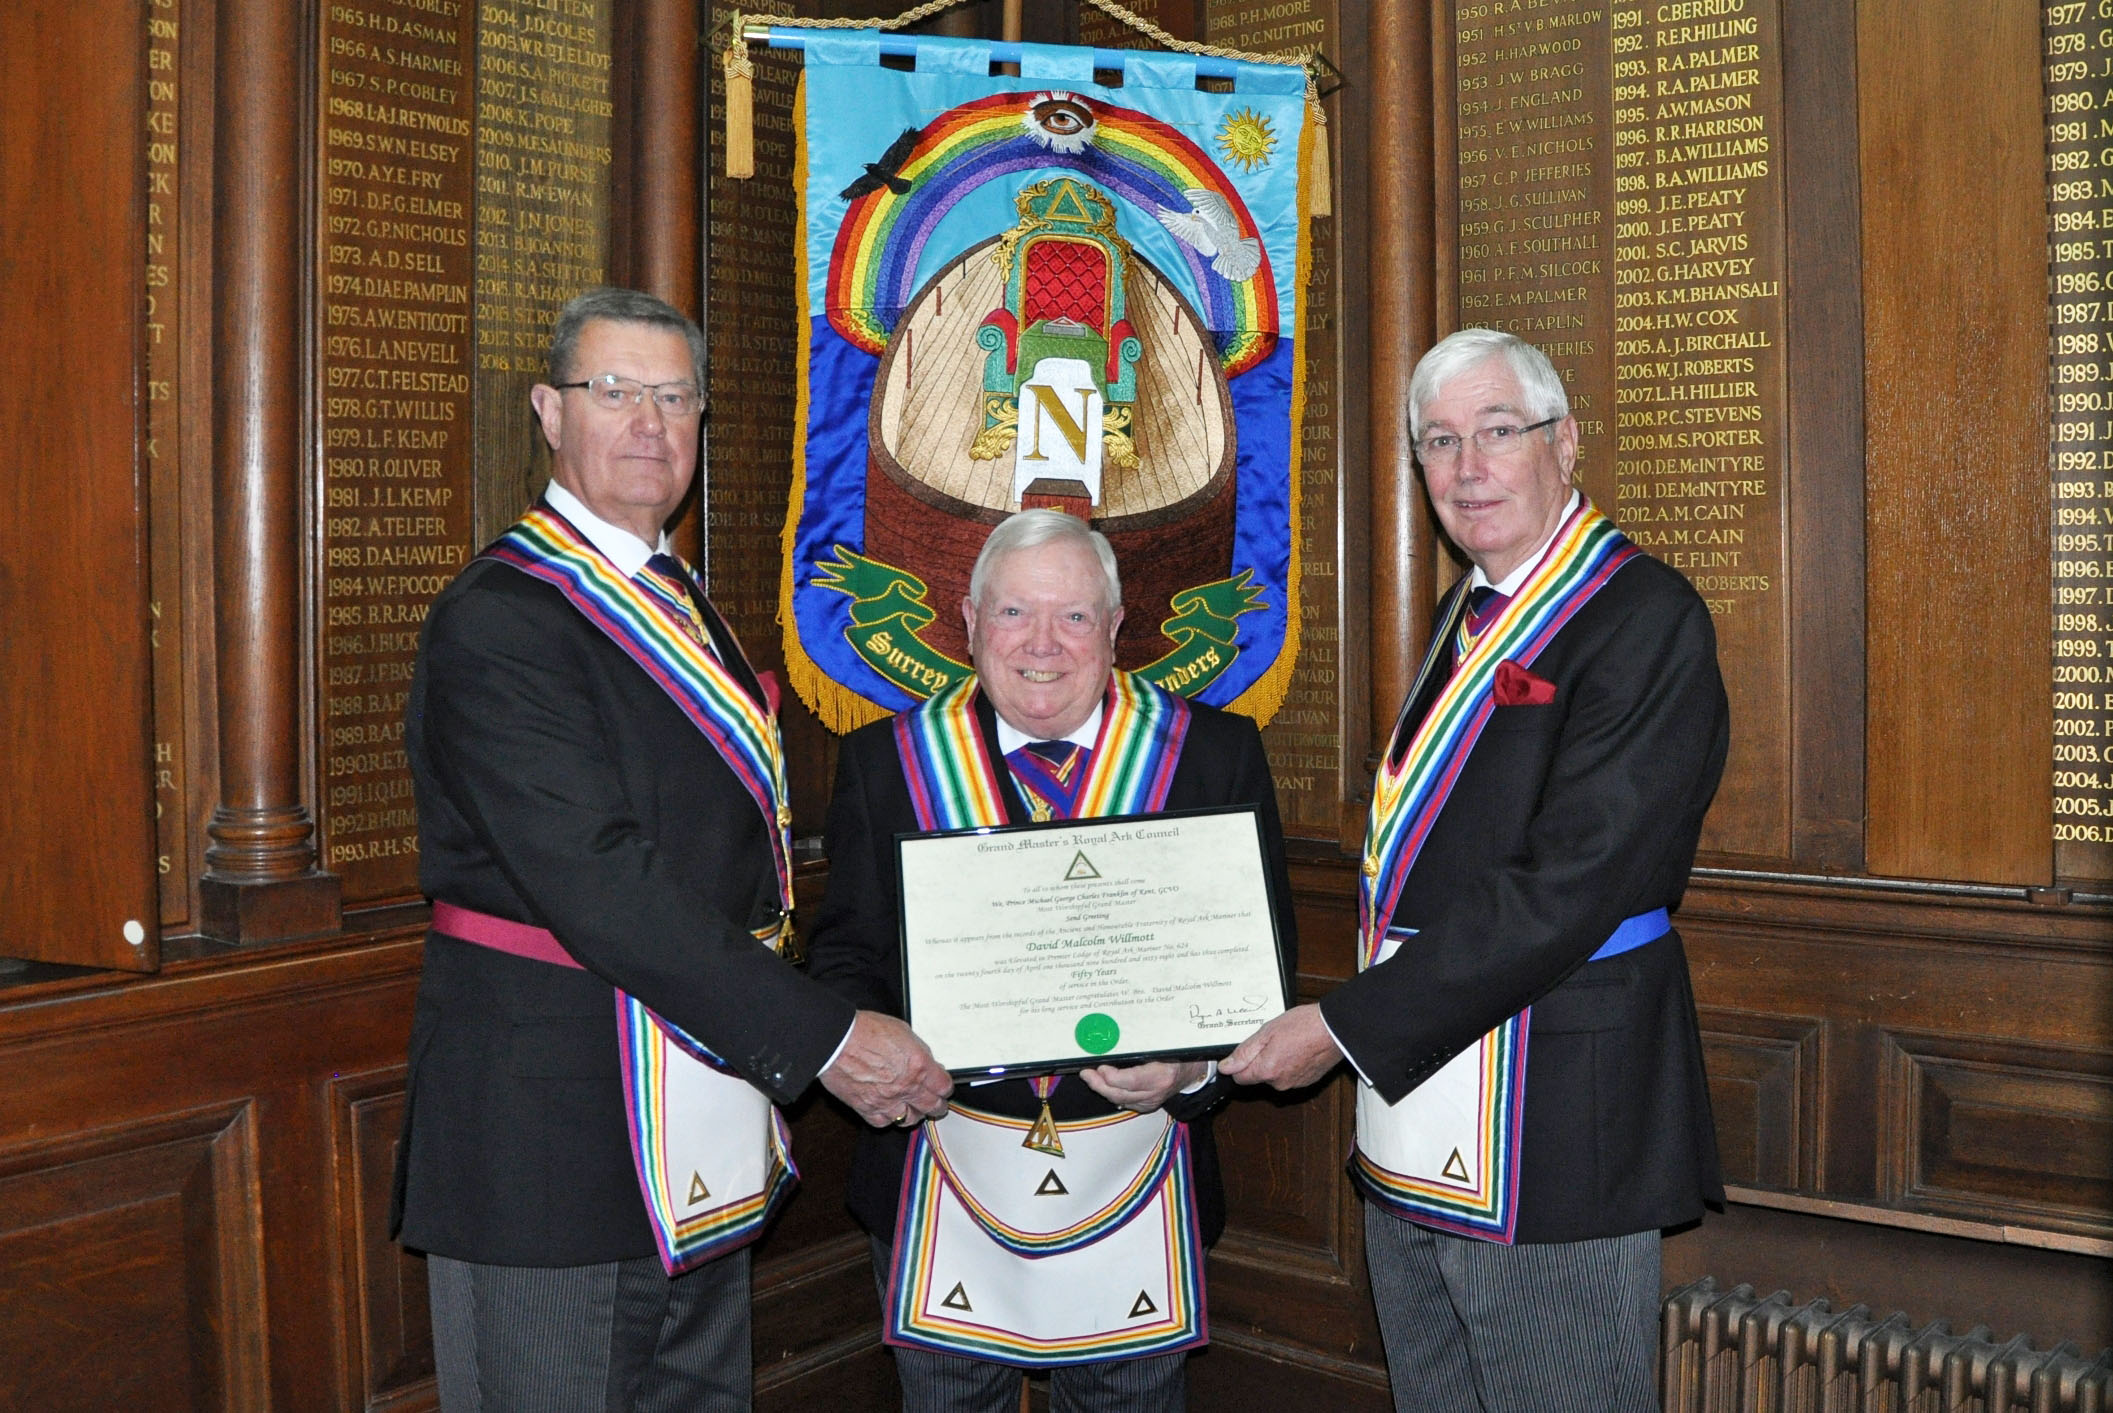 Surrey Mark Installed Masters and Enthroned Commanders Lodges